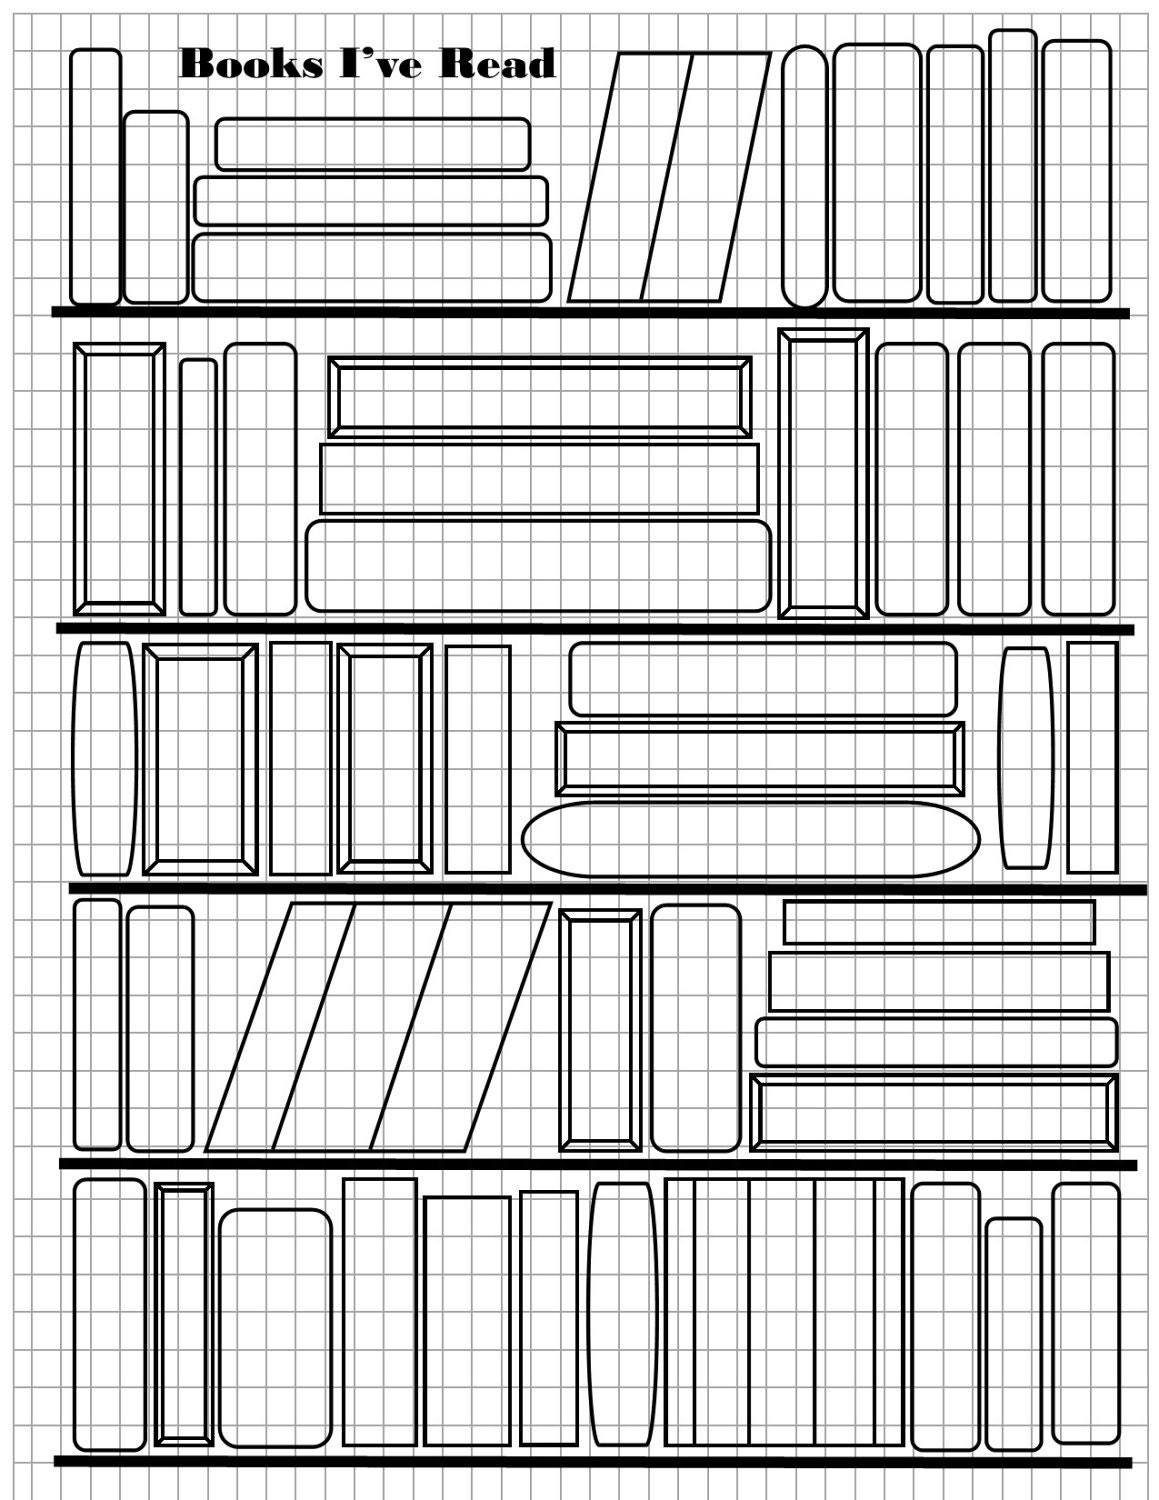 It is a graphic of Remarkable Books I've Read Printable